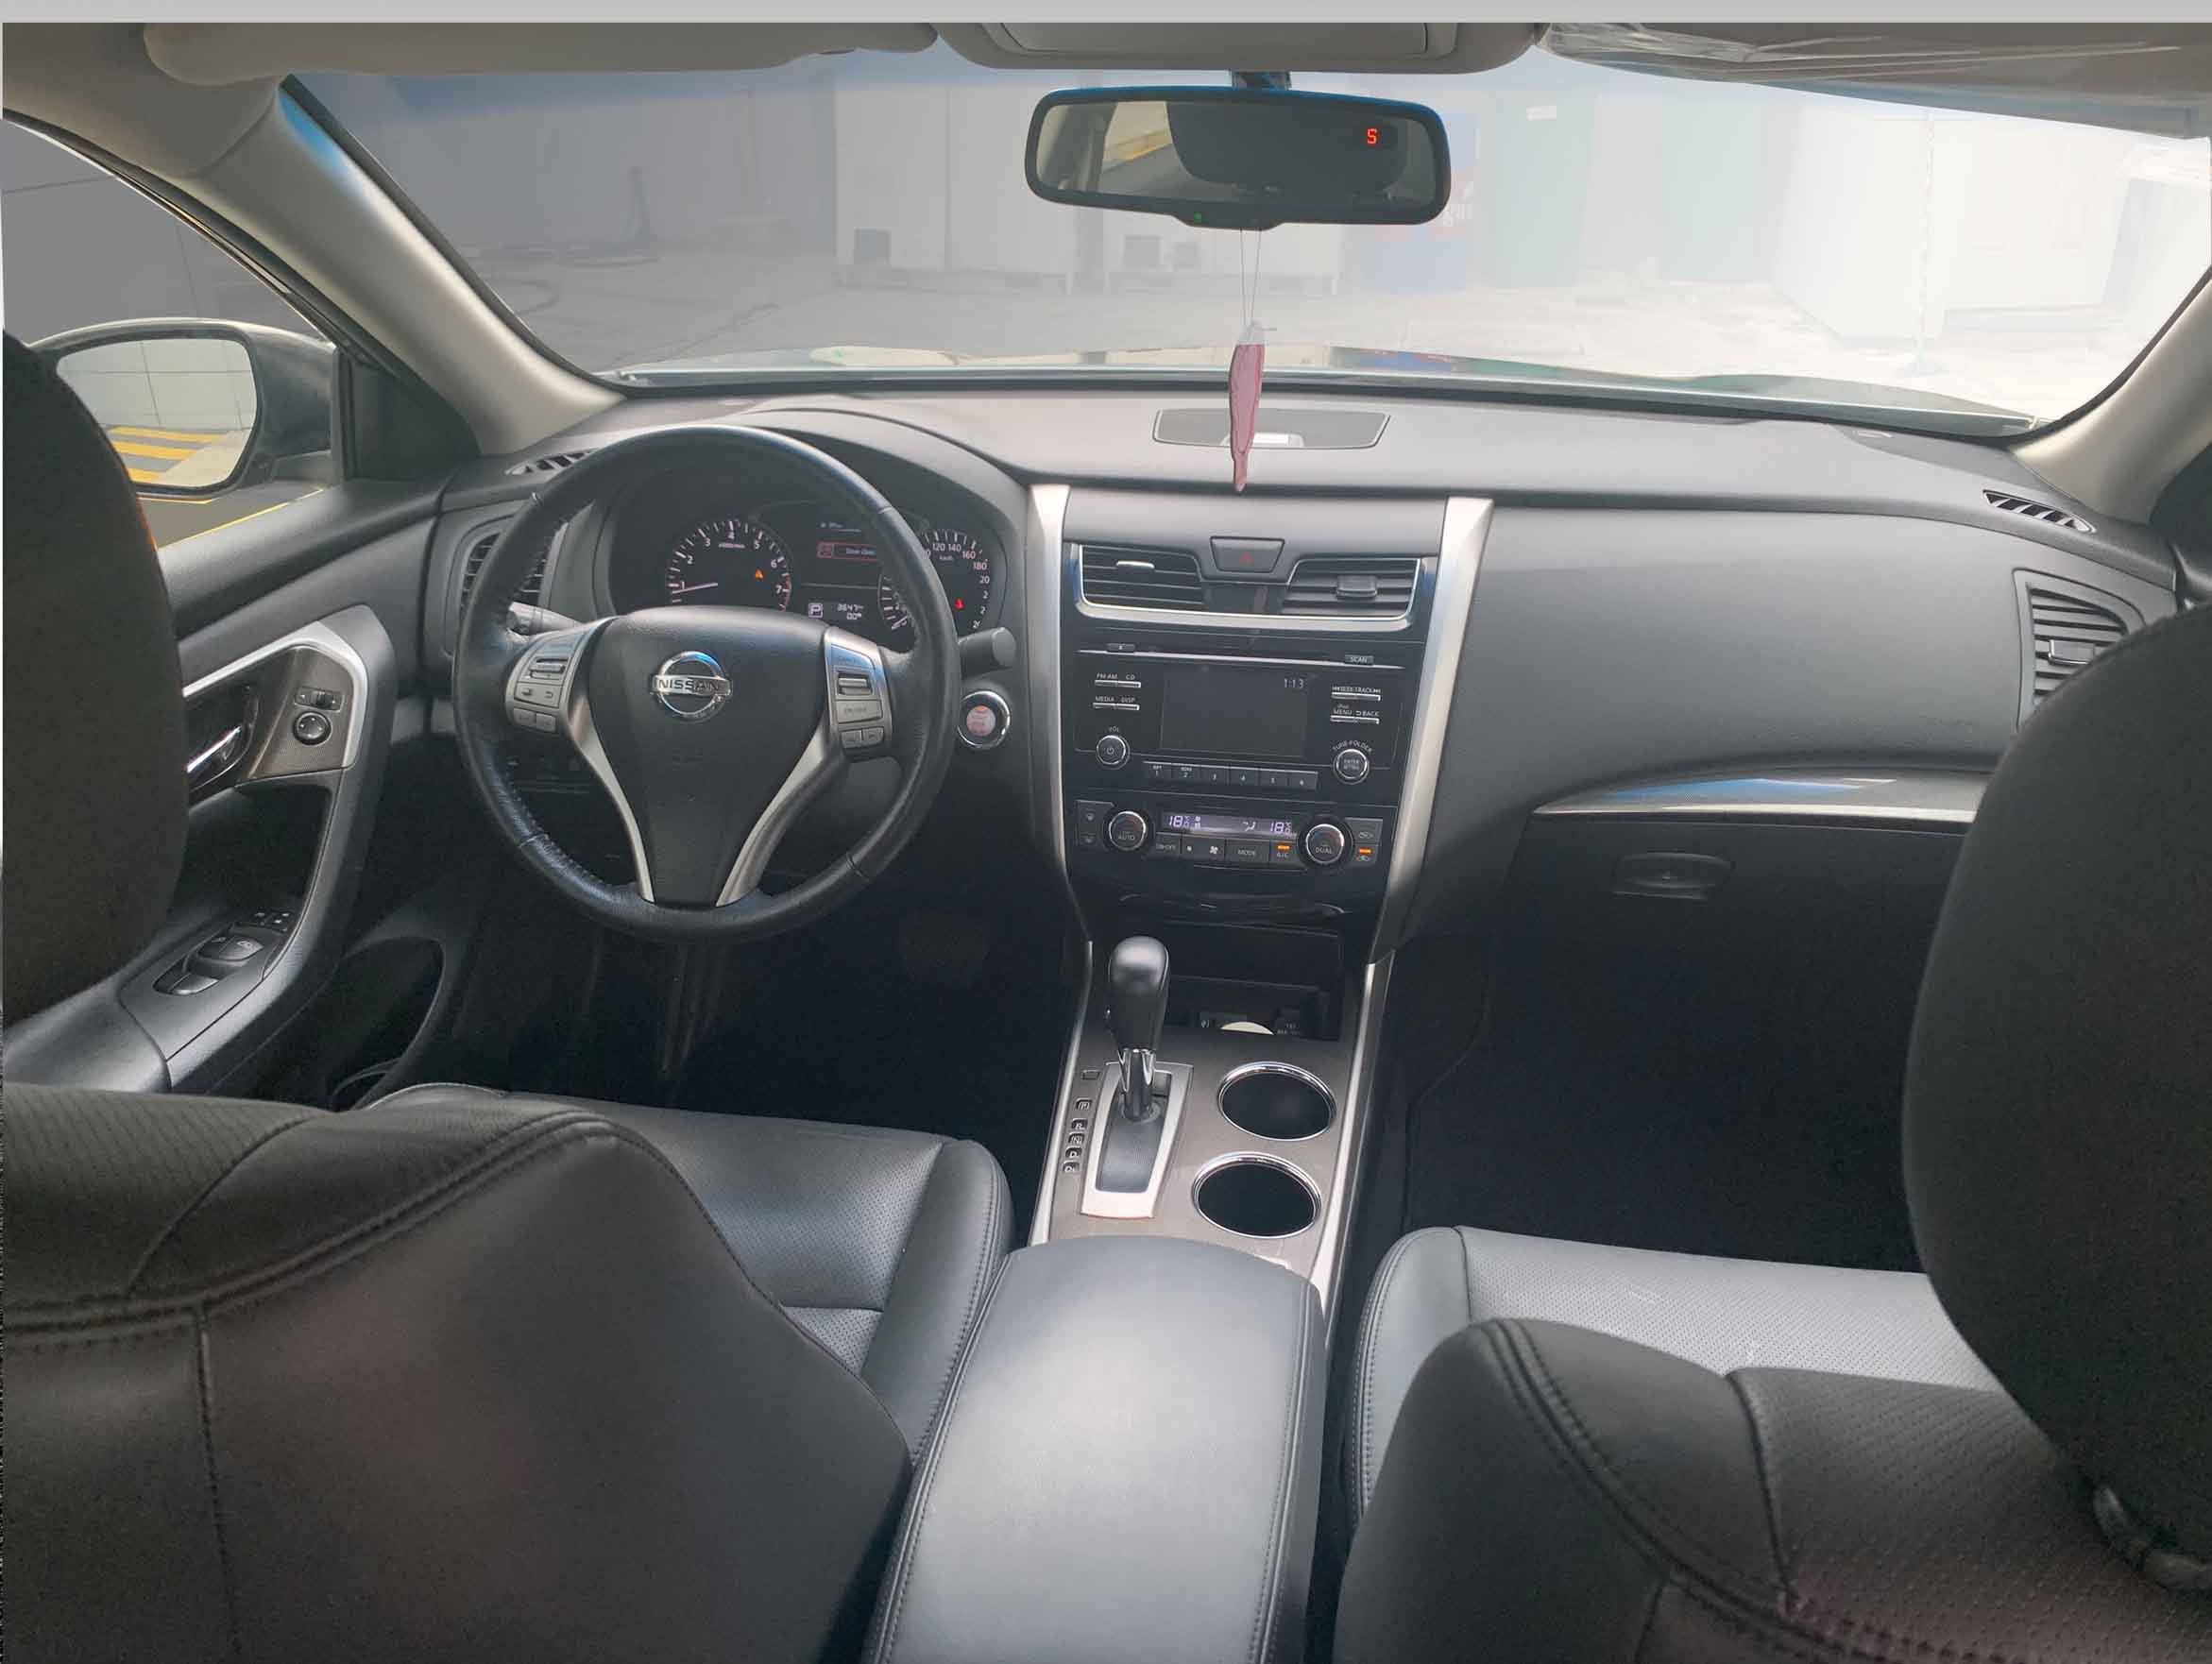 stallion approved - nissan Altima 2015 interior view